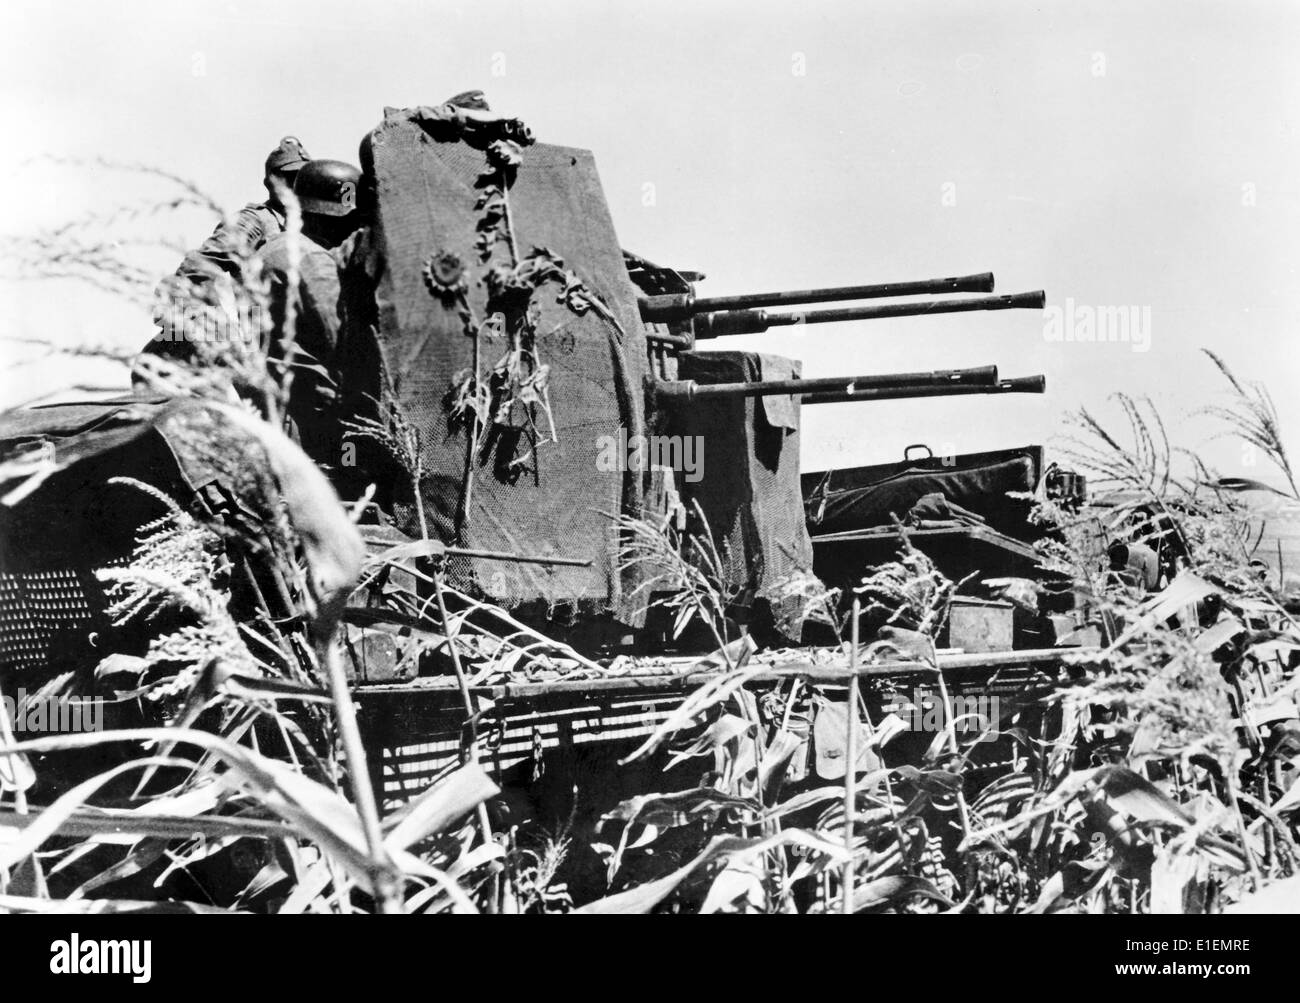 The picture from Nazi news reporting shows German soldiers crewing an anti-aircraft gun (Flak) in a field of sunflowers Stock Photo